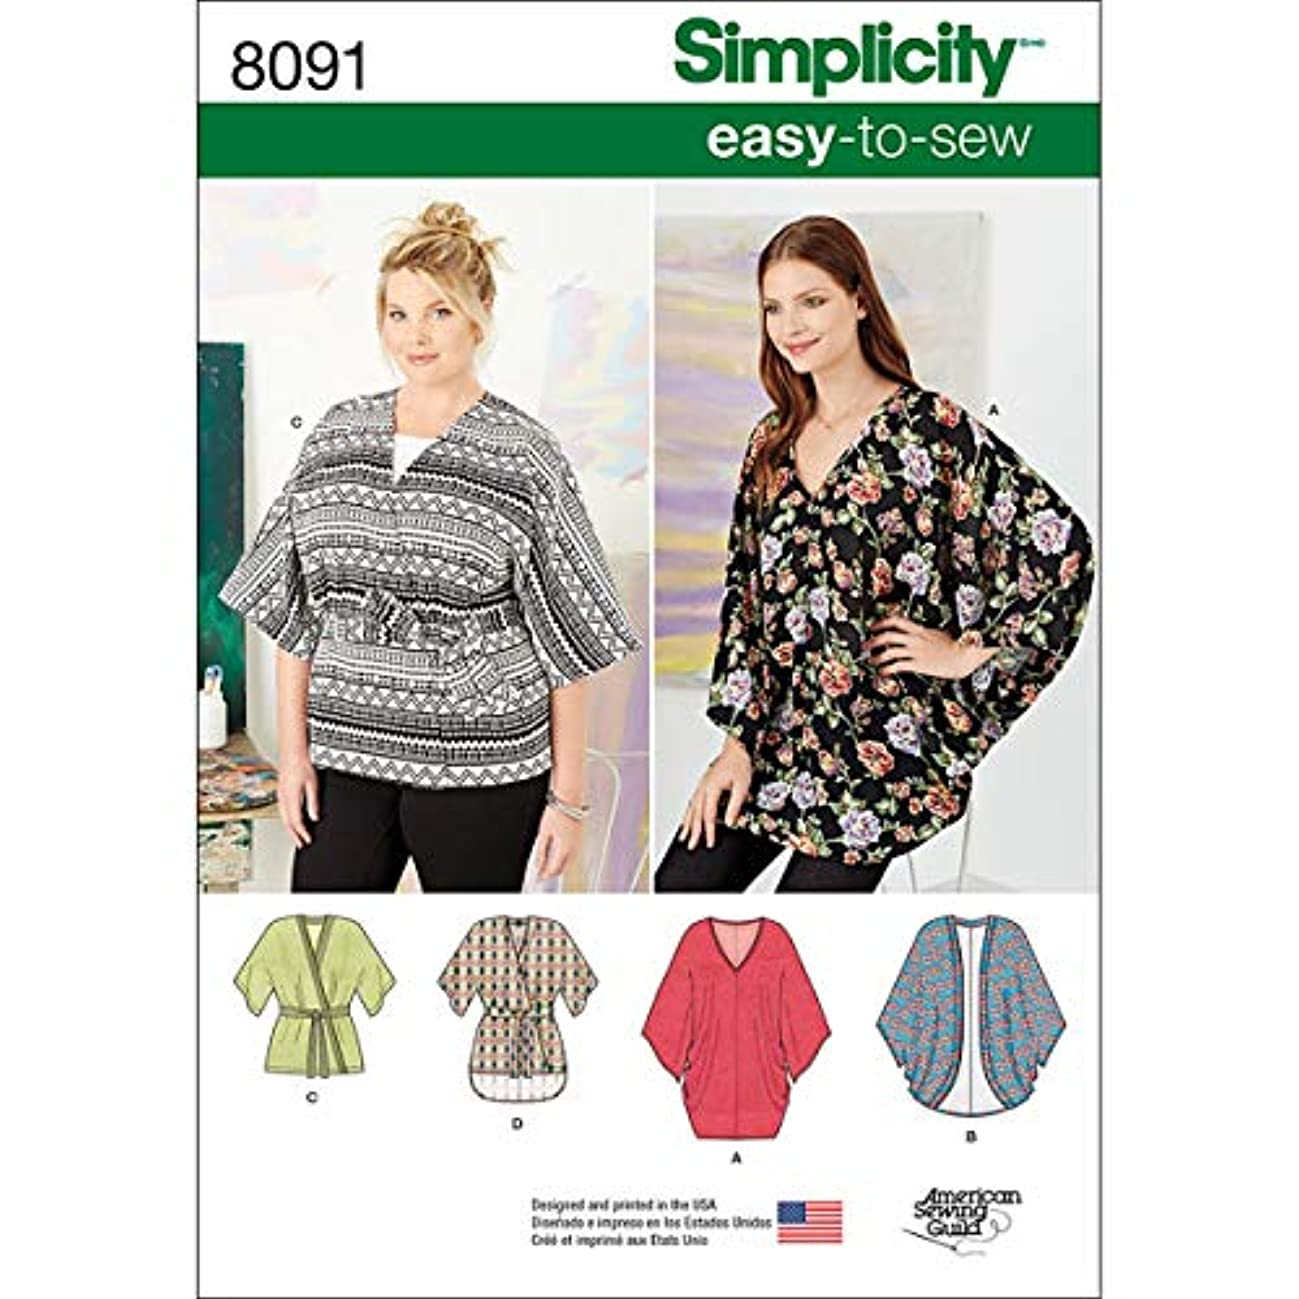 Simplicity Creative Patterns Simplicity Patterns Misses Kimonos in Various Styles Size: A (XXS-XS-S-M-L-XL-XXL), 8091